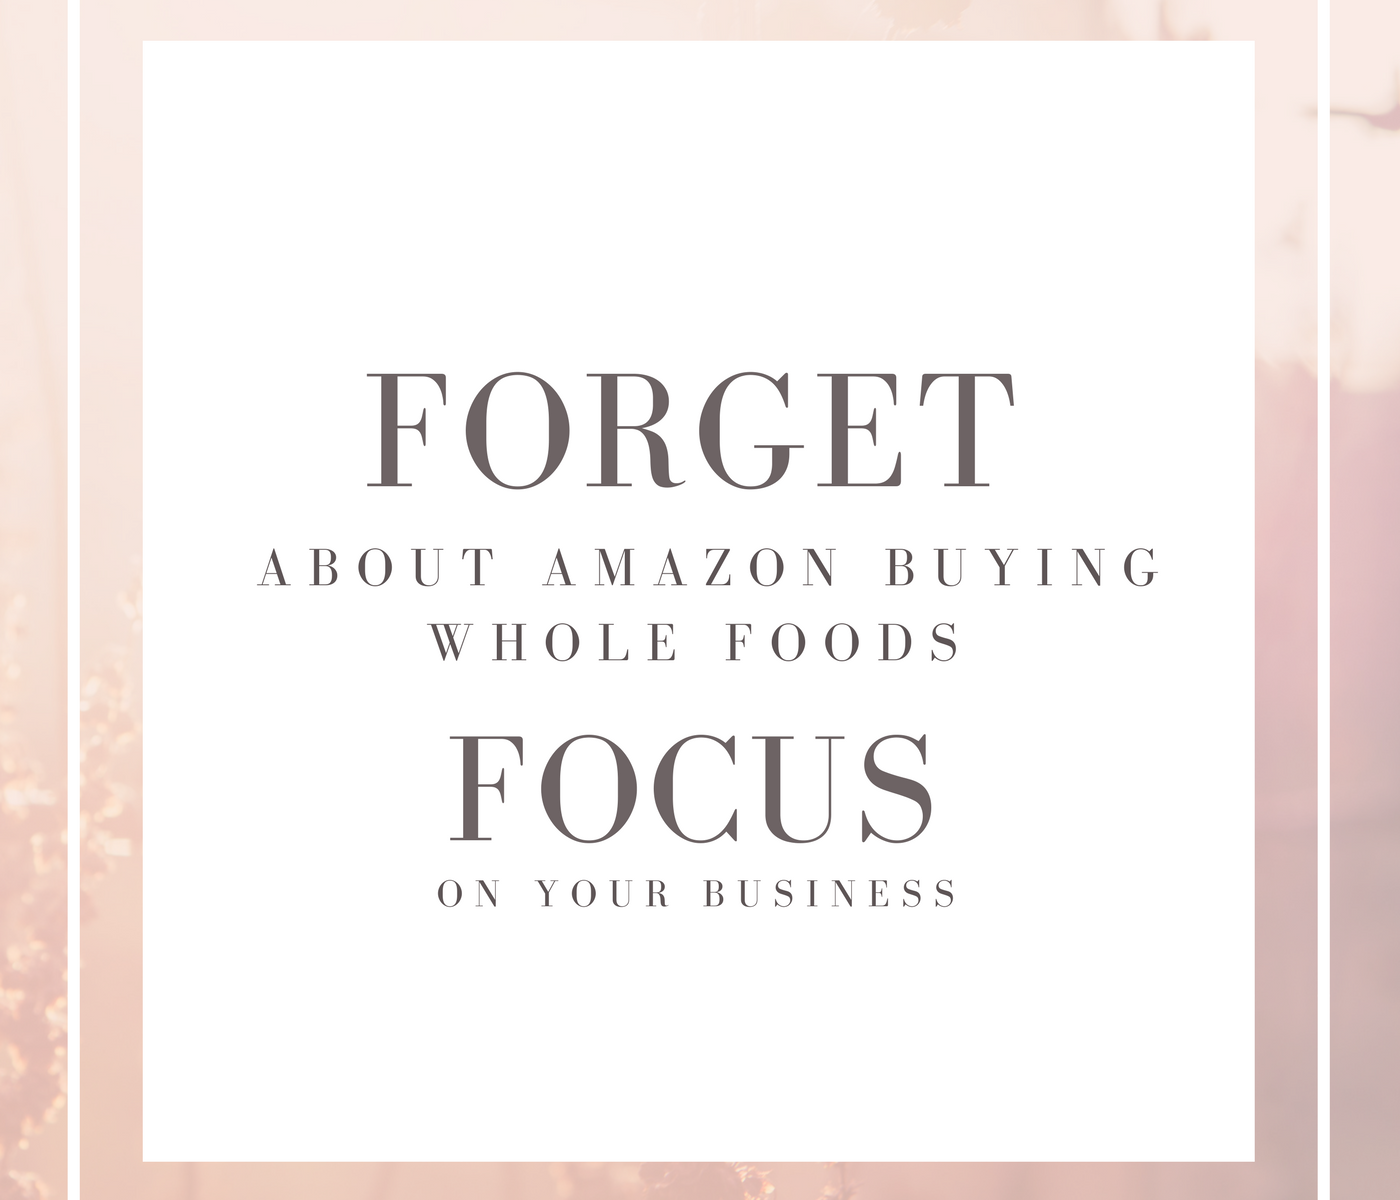 Forget About Amazon Buying Whole Foods – Focus on Your Business